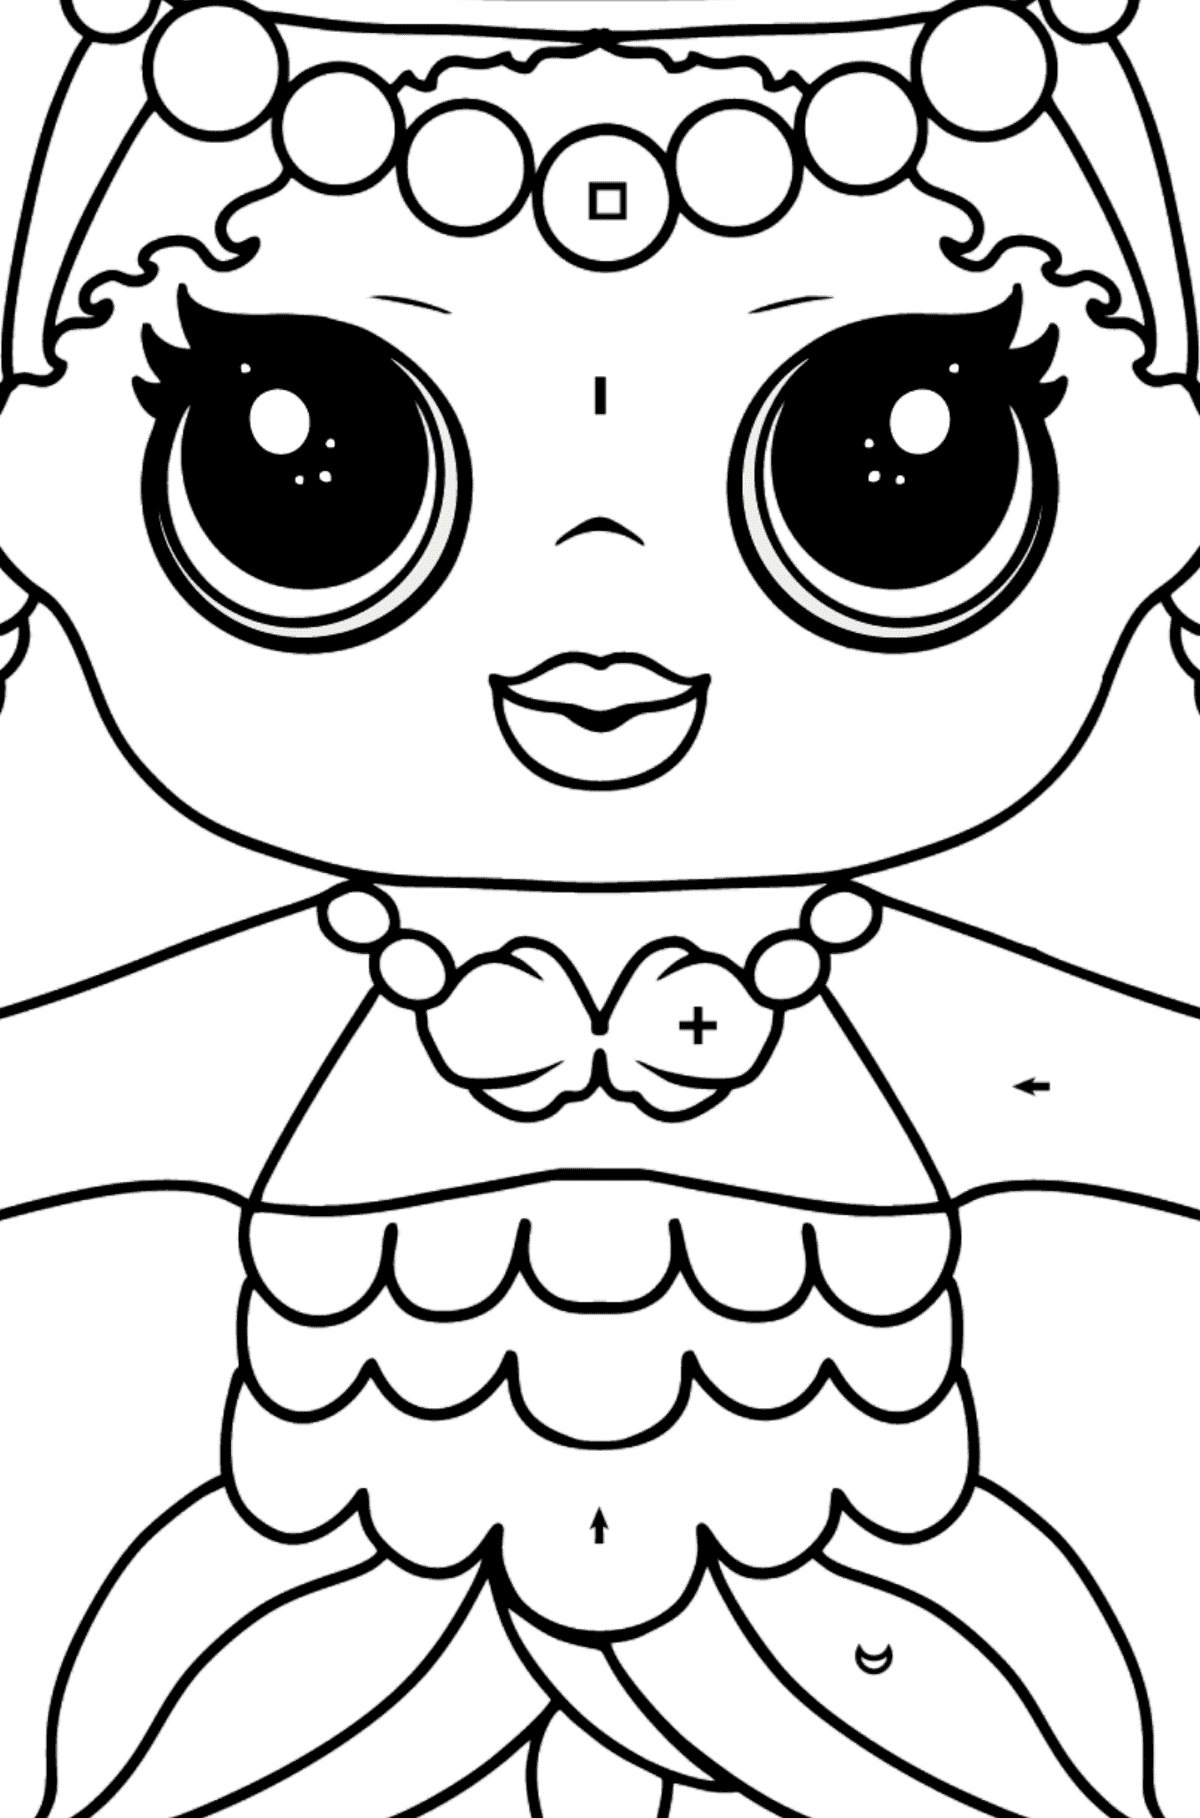 L.O.L. Surprise Doll Merbaby - Coloring by Symbols for Kids